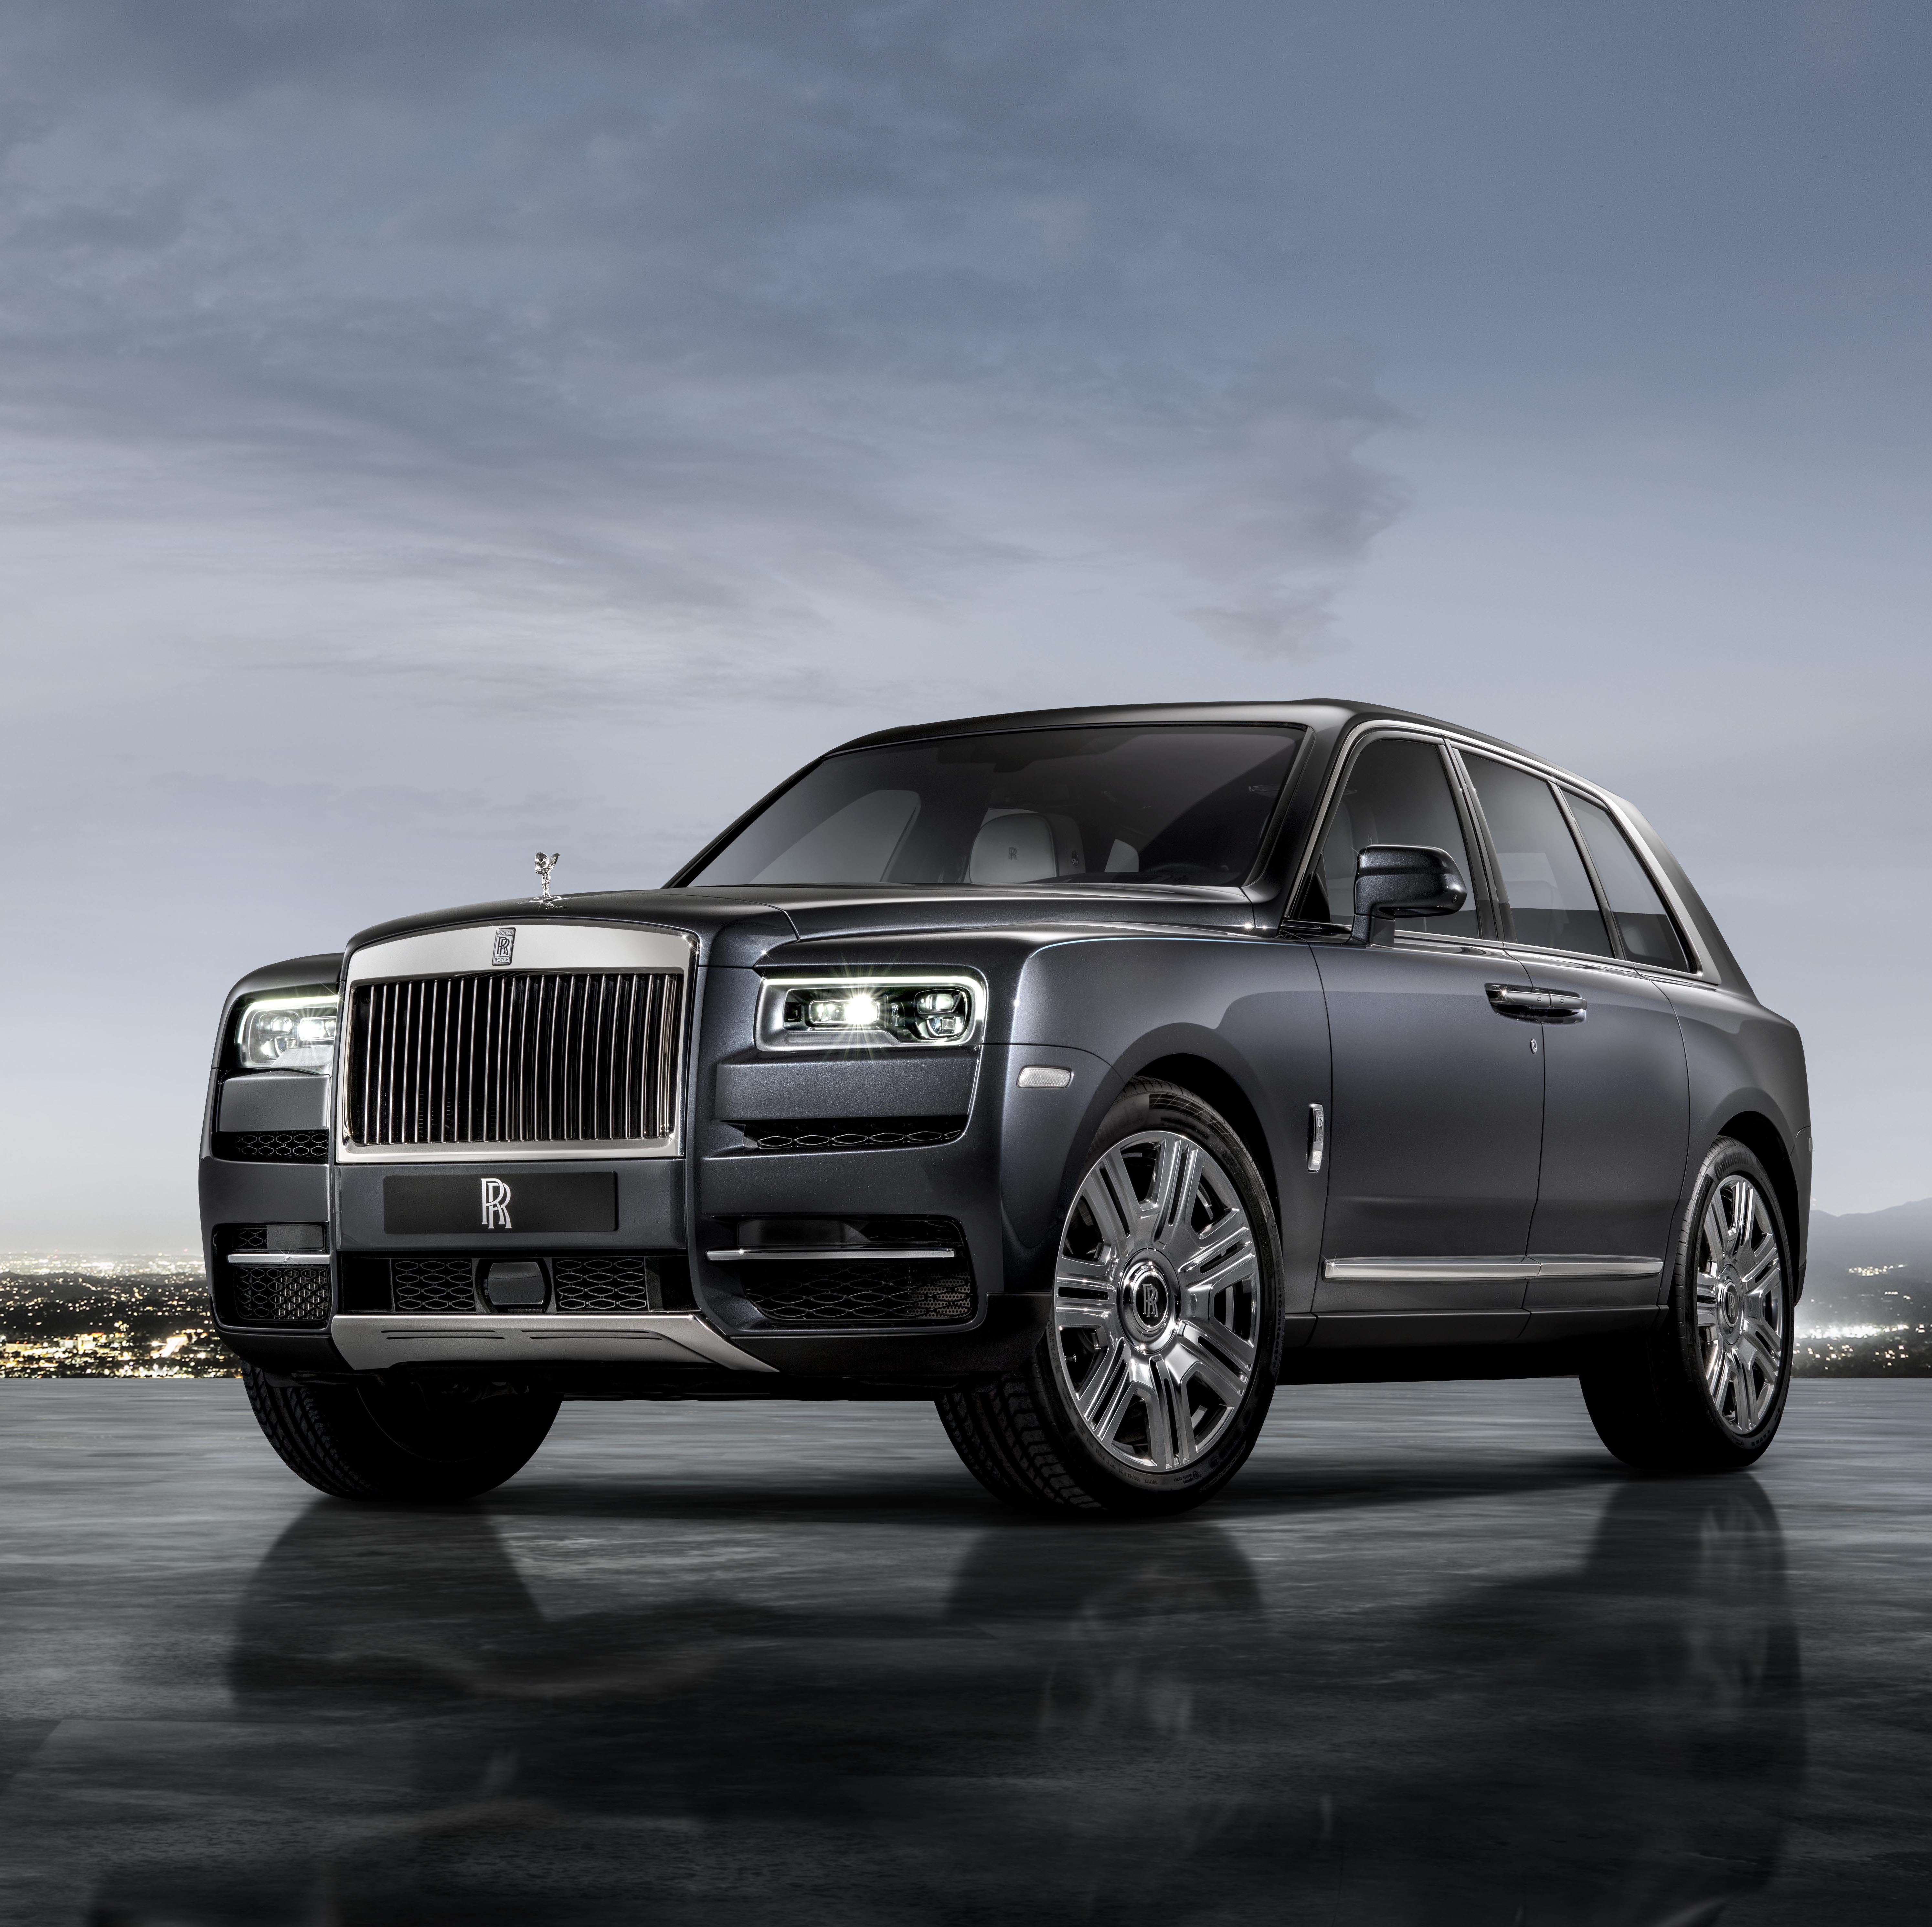 Rolls Royce Cullinan 2018 Release Date Prices Specs And Reviews The Week Uk